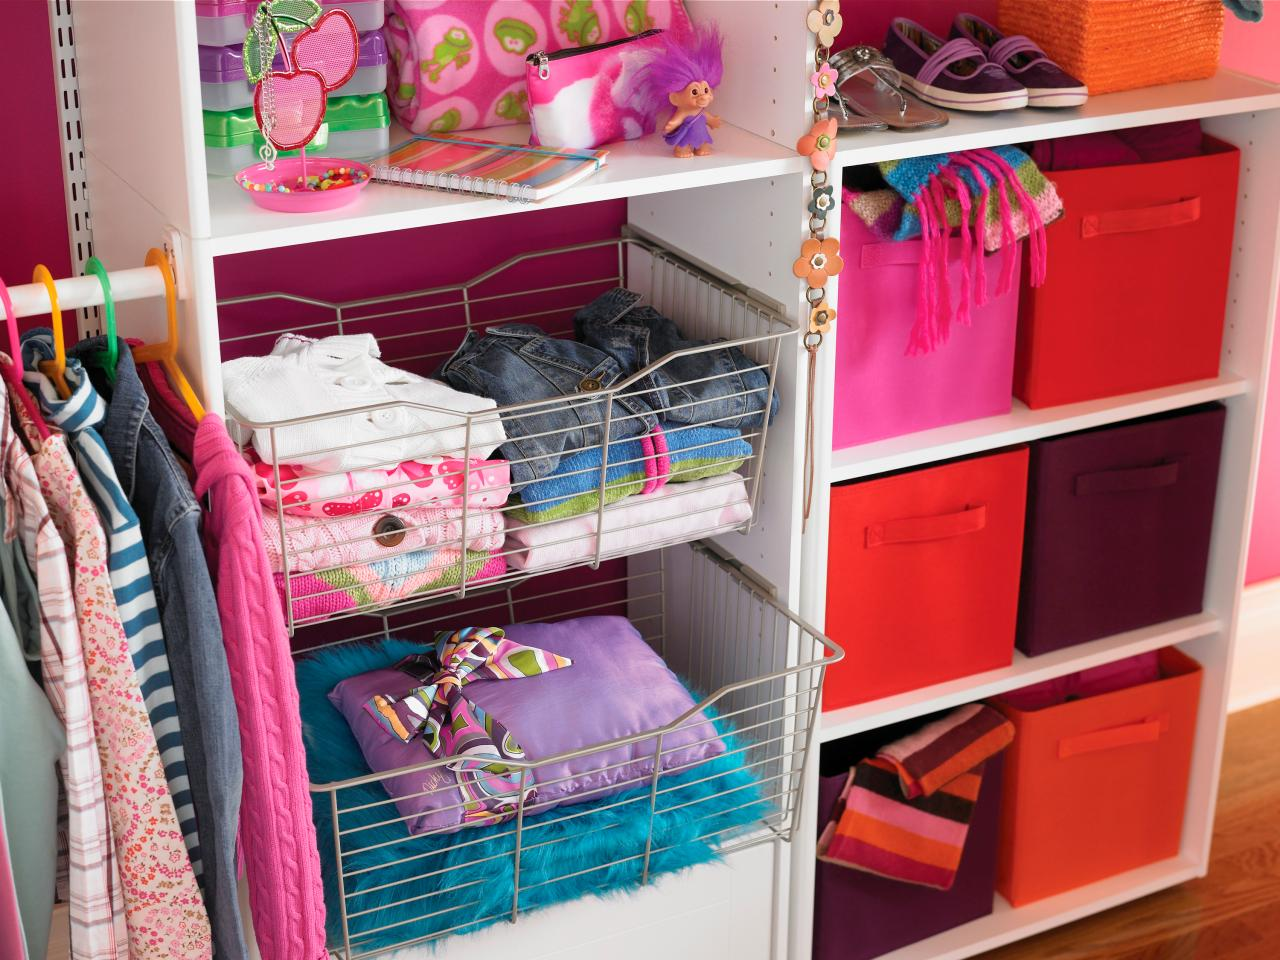 Closet Organizing Ideas small closet organization ideas: pictures, options & tips | hgtv